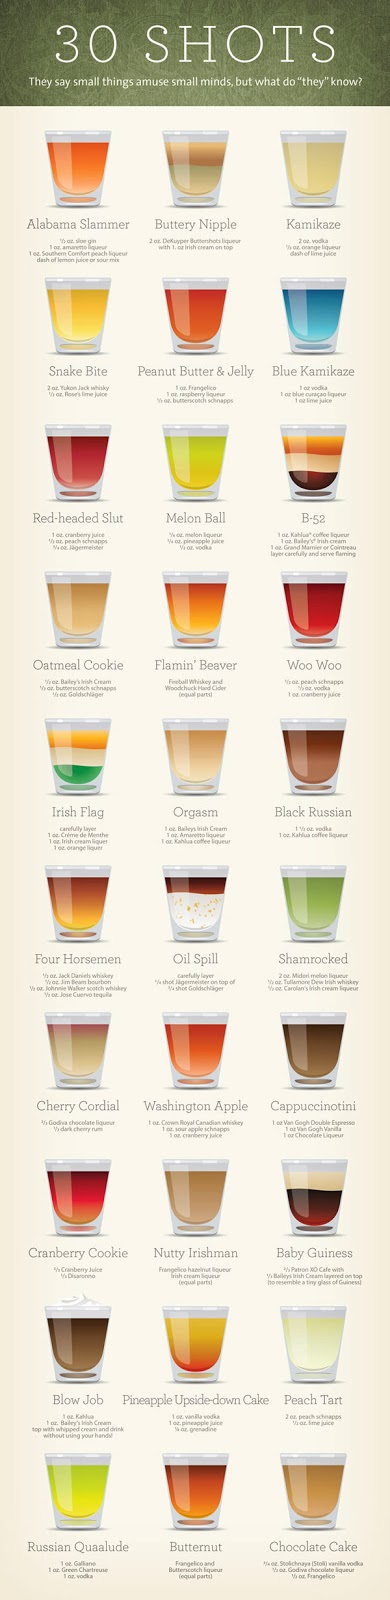 30 Shots infographic by The Roosevelts